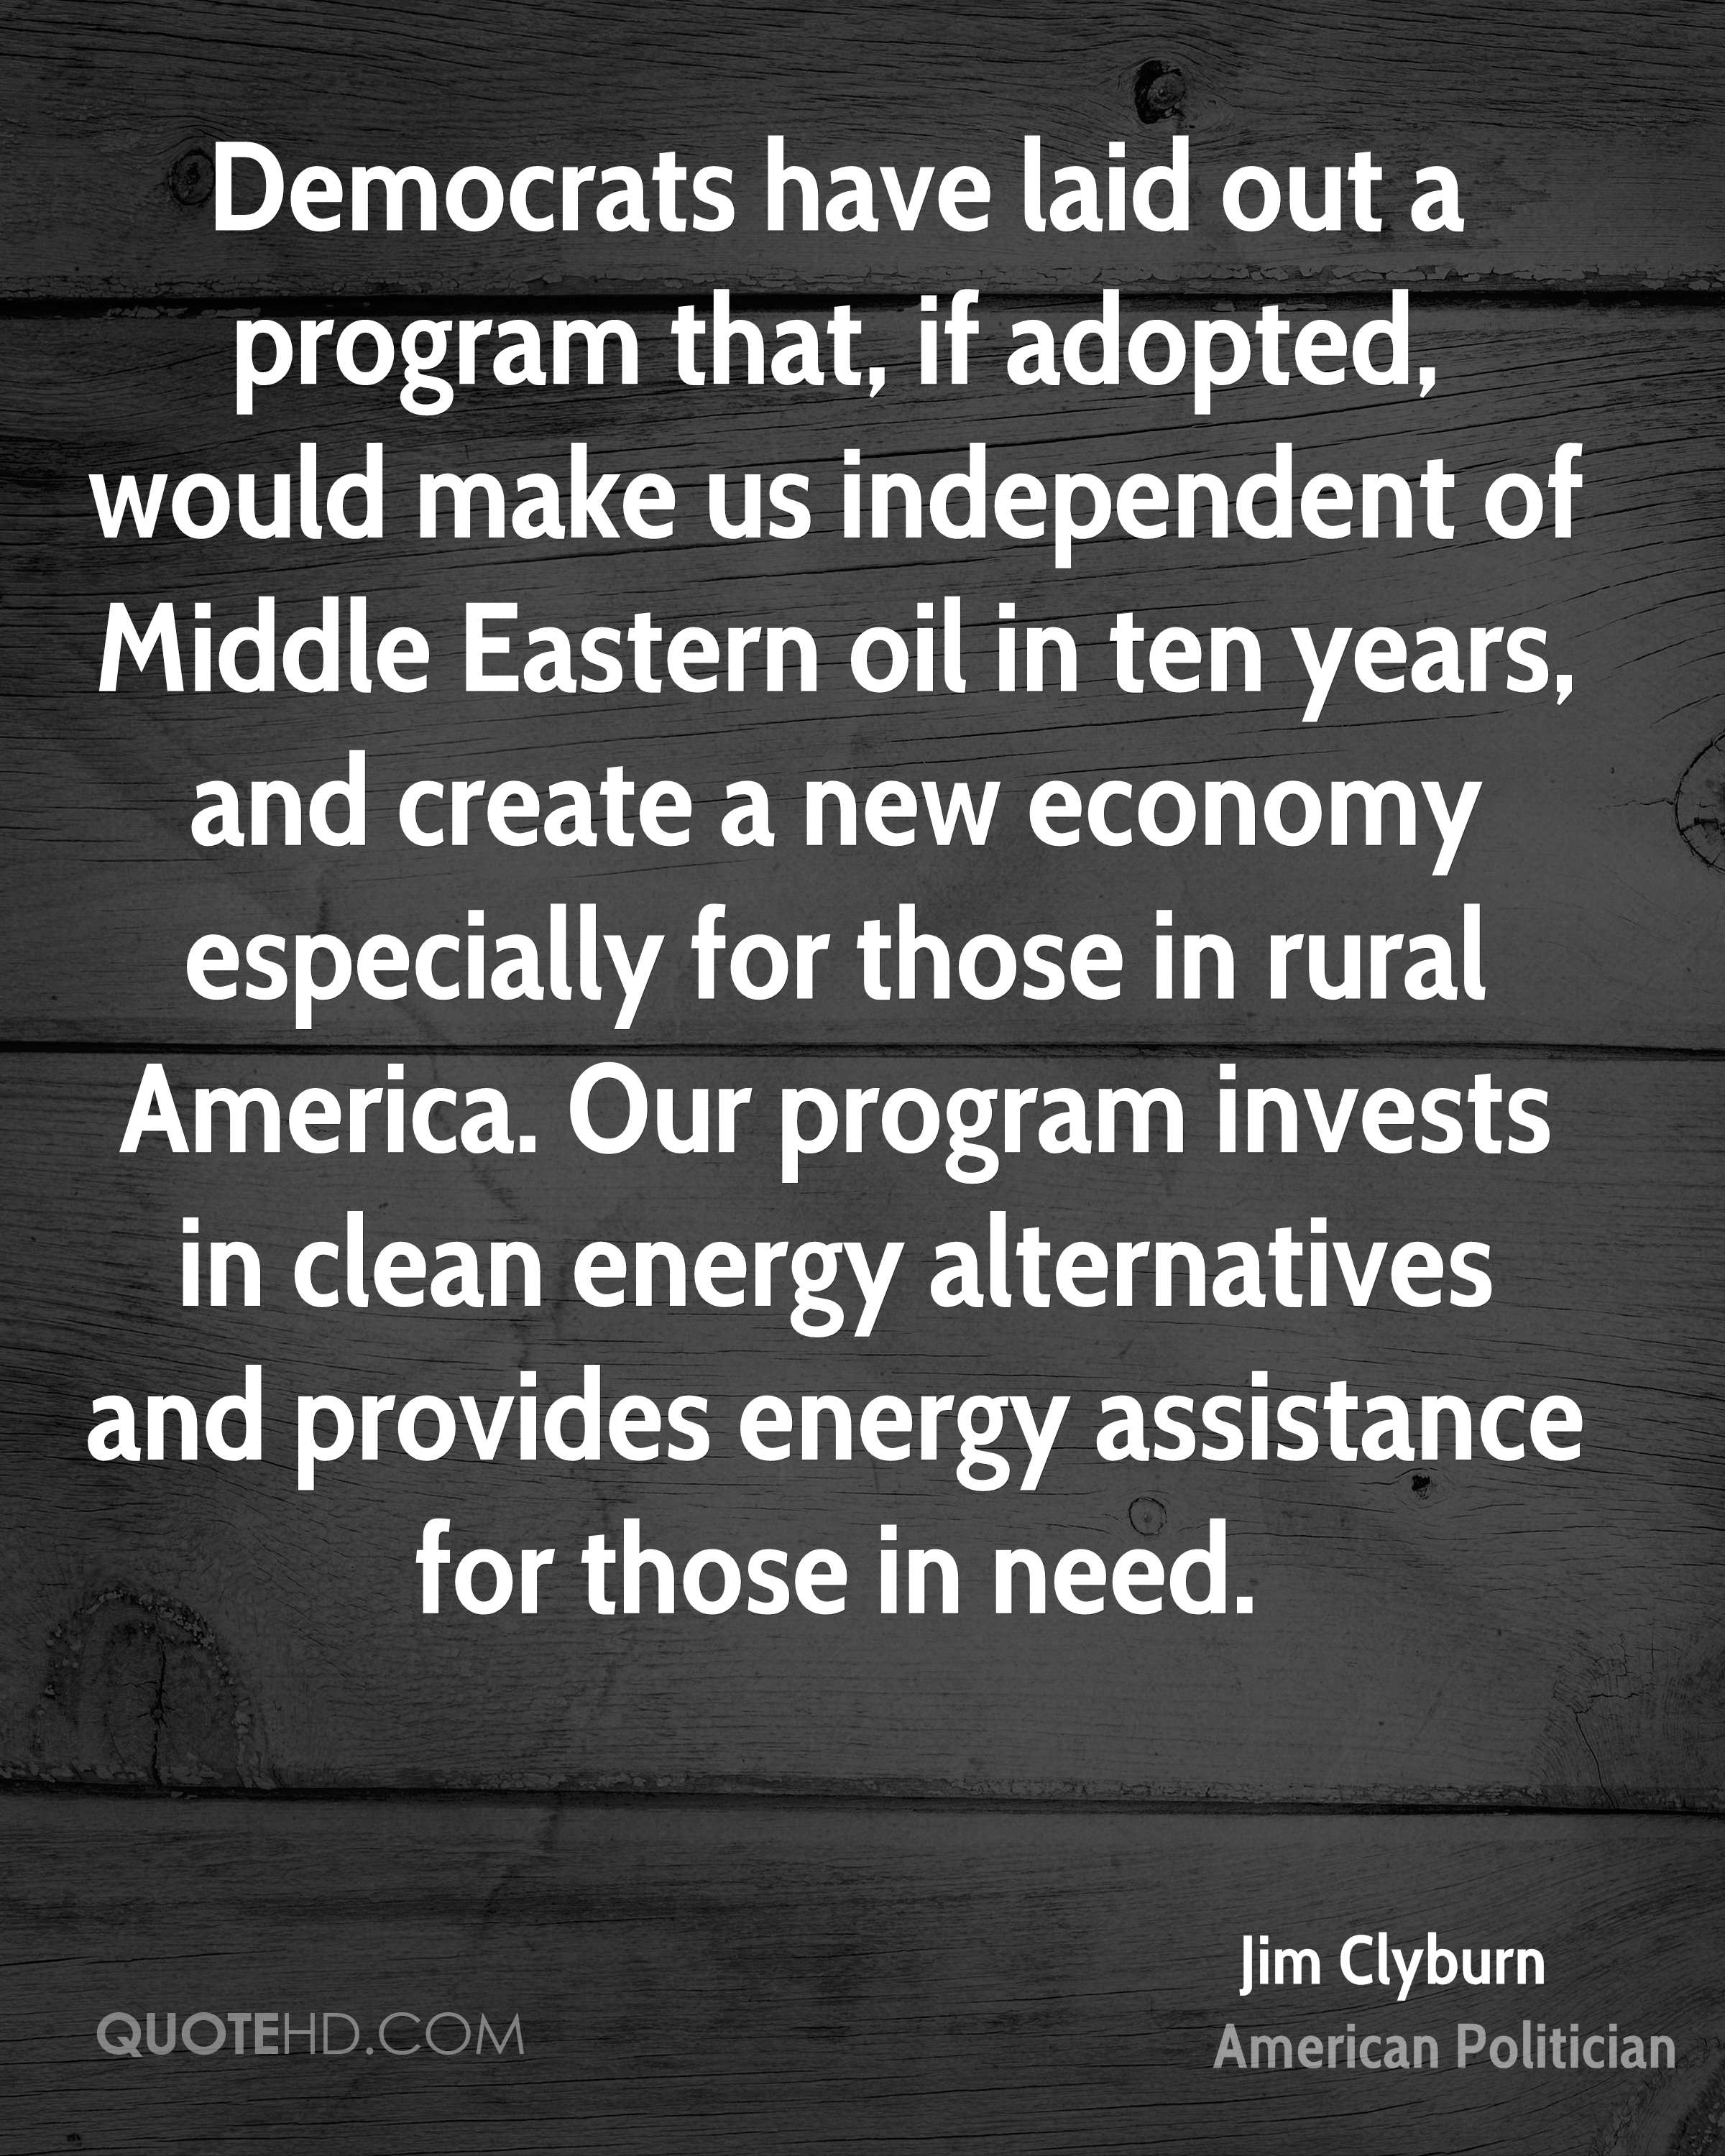 Democrats have laid out a program that, if adopted, would make us independent of Middle Eastern oil in ten years, and create a new economy especially for those in rural America. Our program invests in clean energy alternatives and provides energy assistance for those in need.